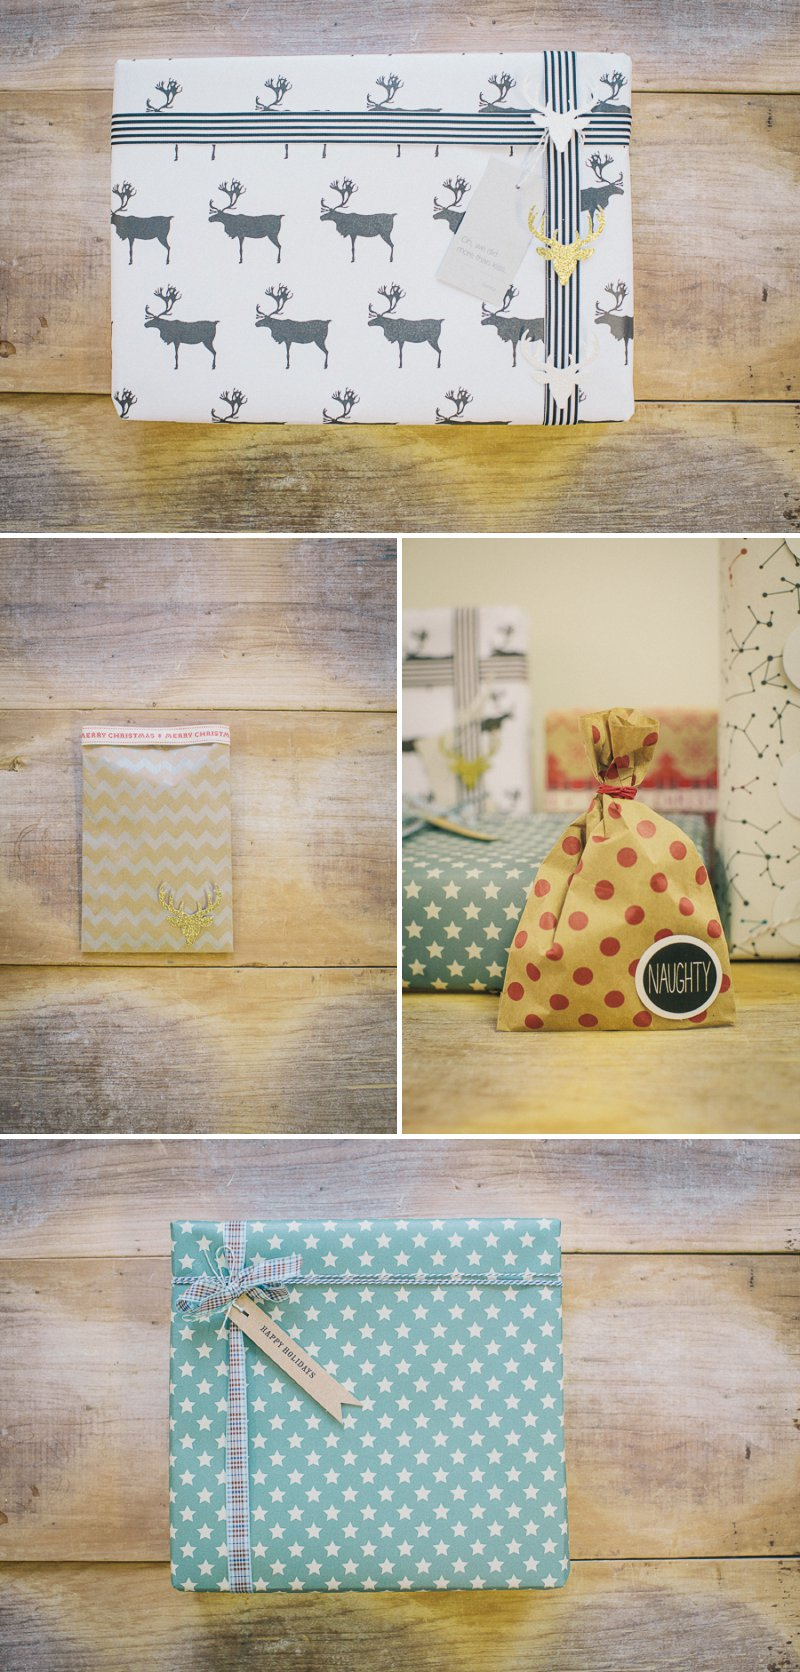 Nine Beautiful And Creative Christmas DIY Gift Wrap Ideas With Ribbons, Fun Gift Tags and Gorgeous Wrapping Paper From Etsy Suppliers._0002